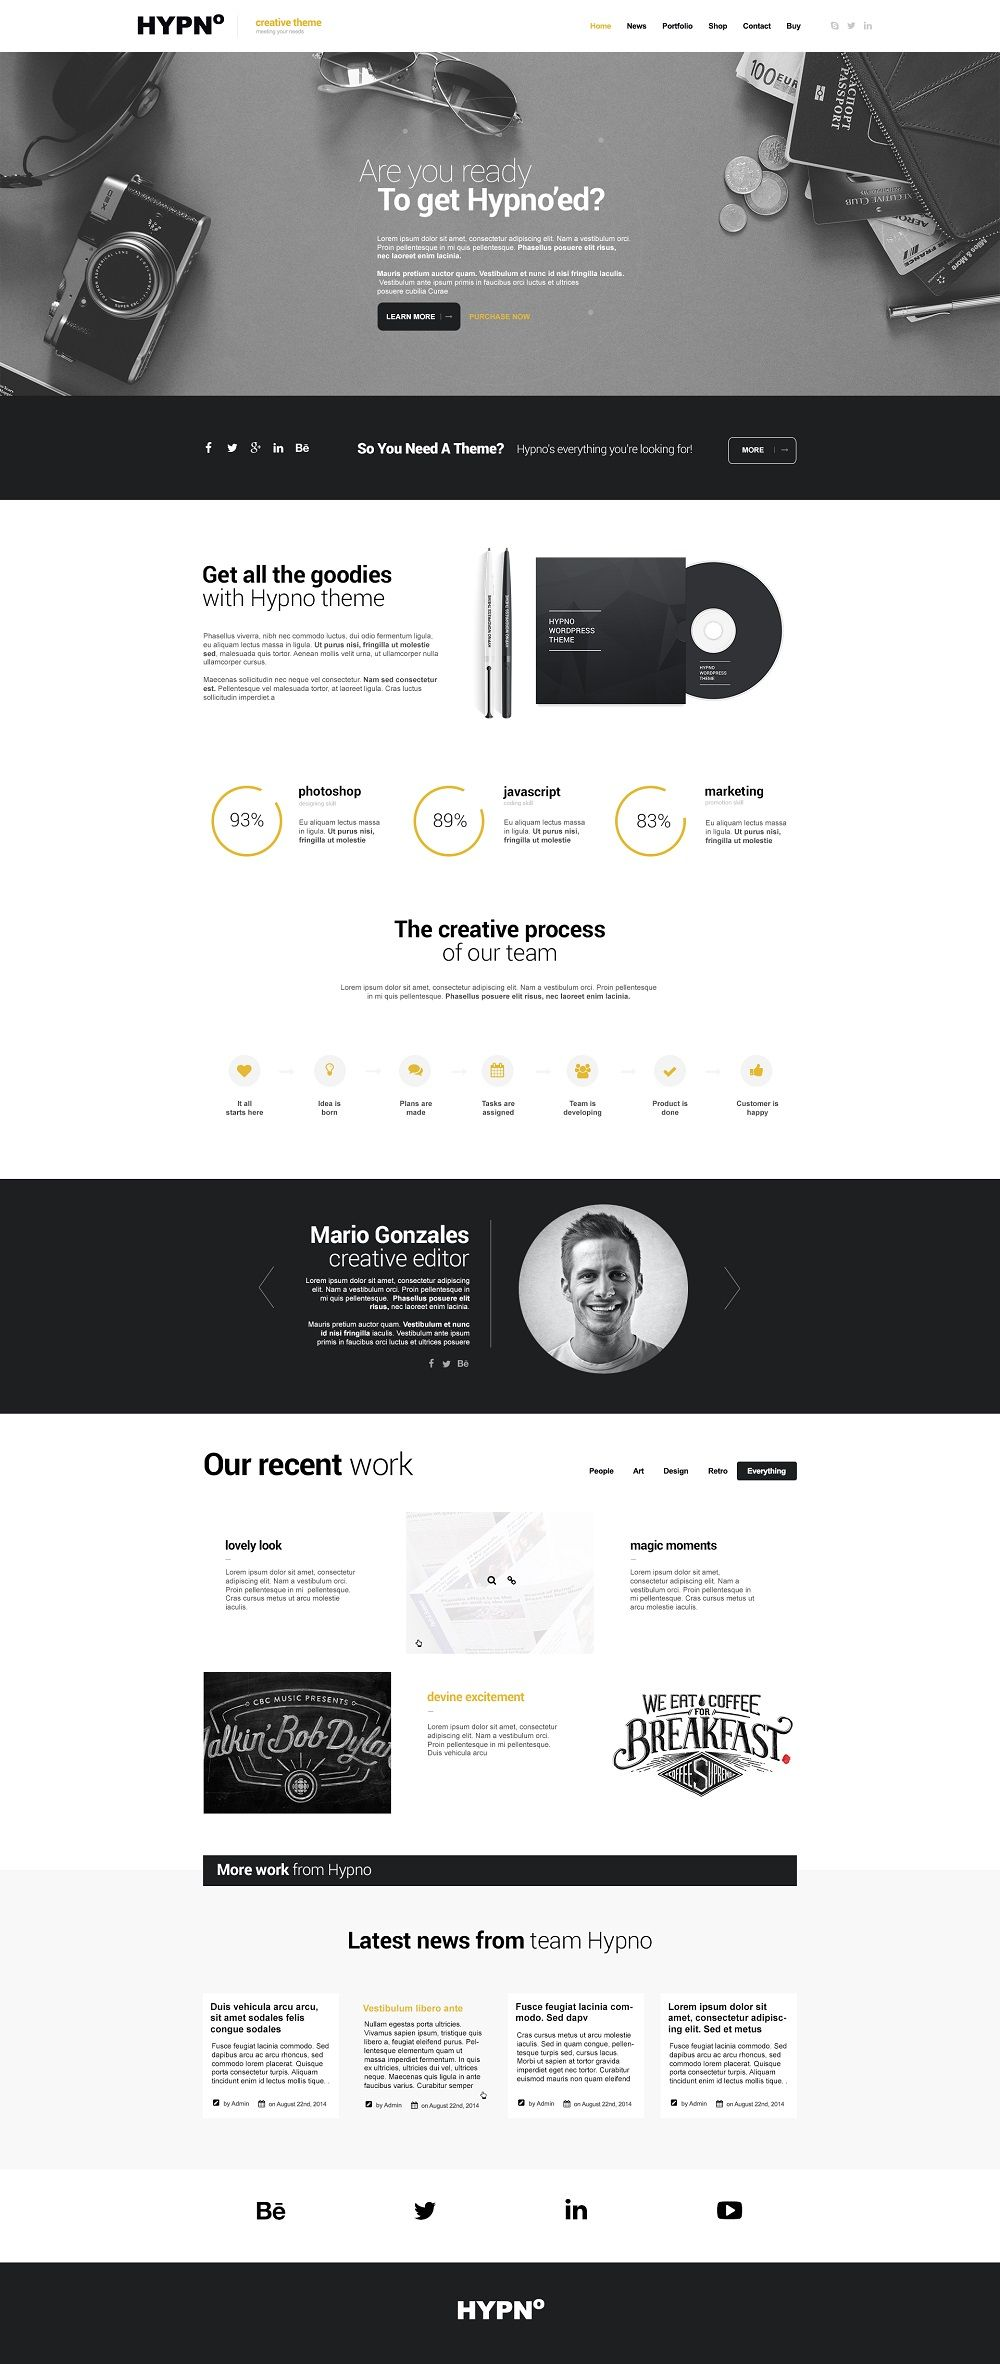 53 Best Minimal Simple Wordpress Themes 2019 Web Design Website Design Inspiration Web Design Trends